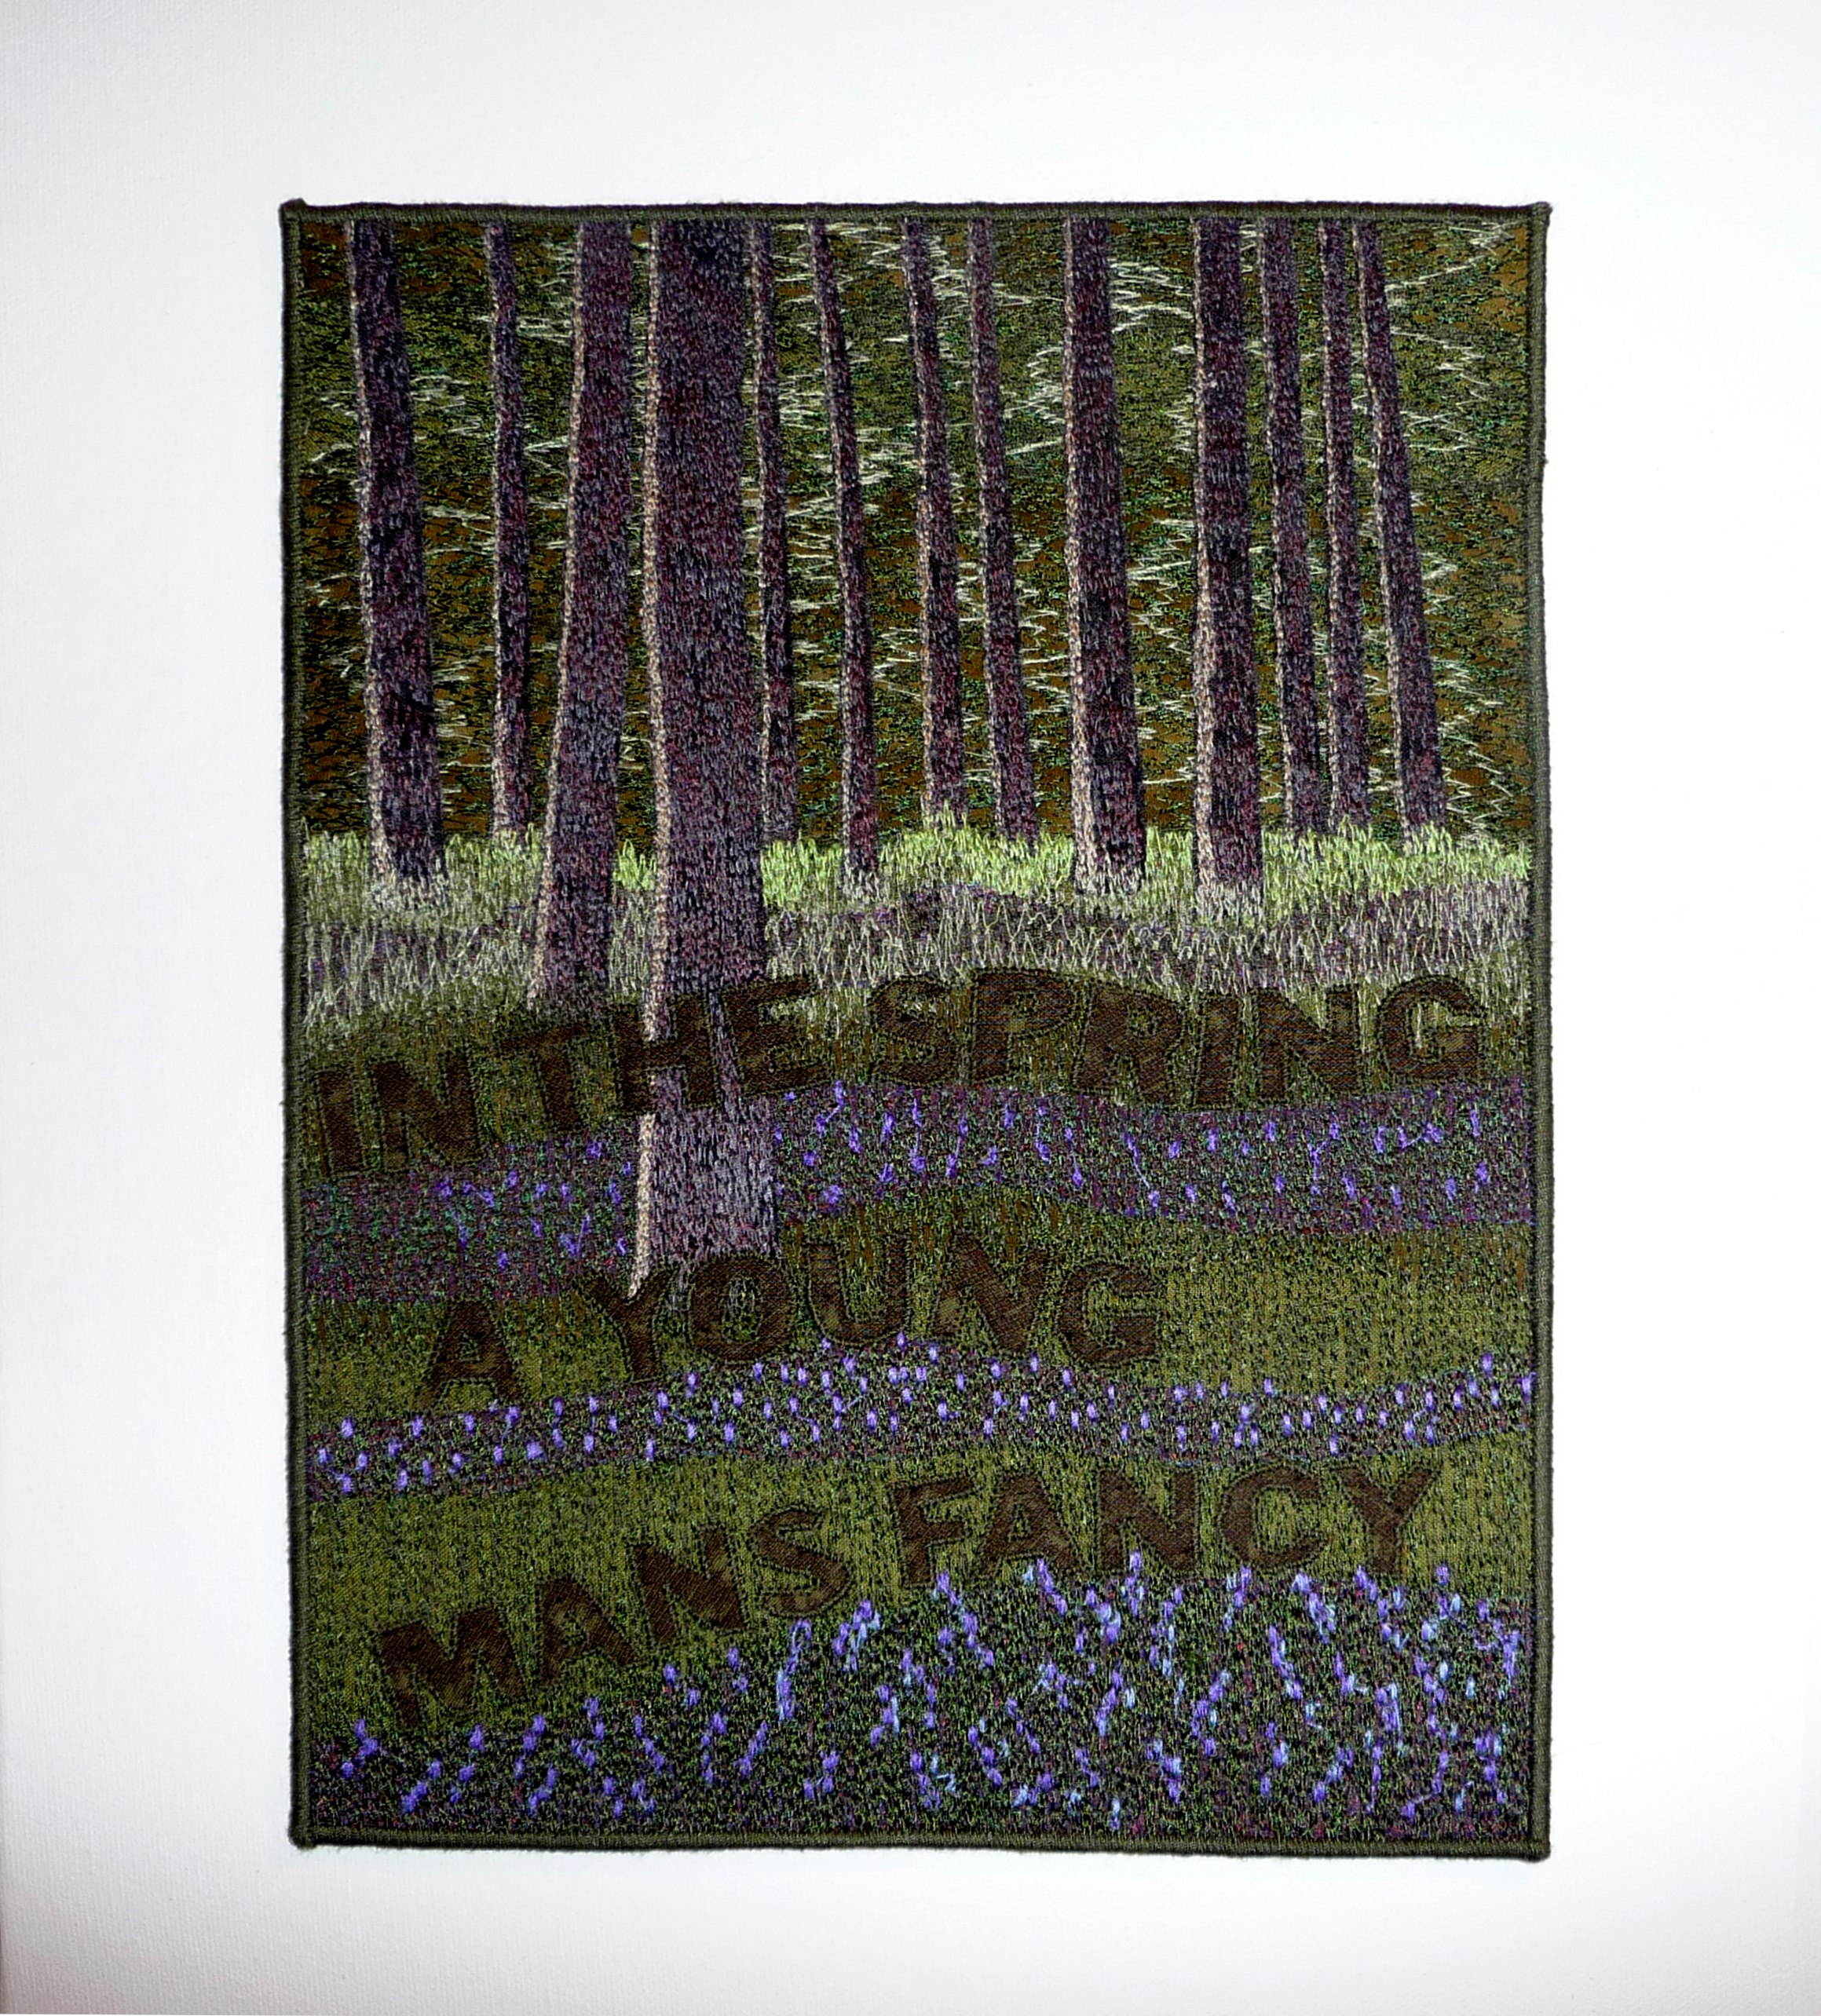 SPRING by Jackie Martin, machine embroidery